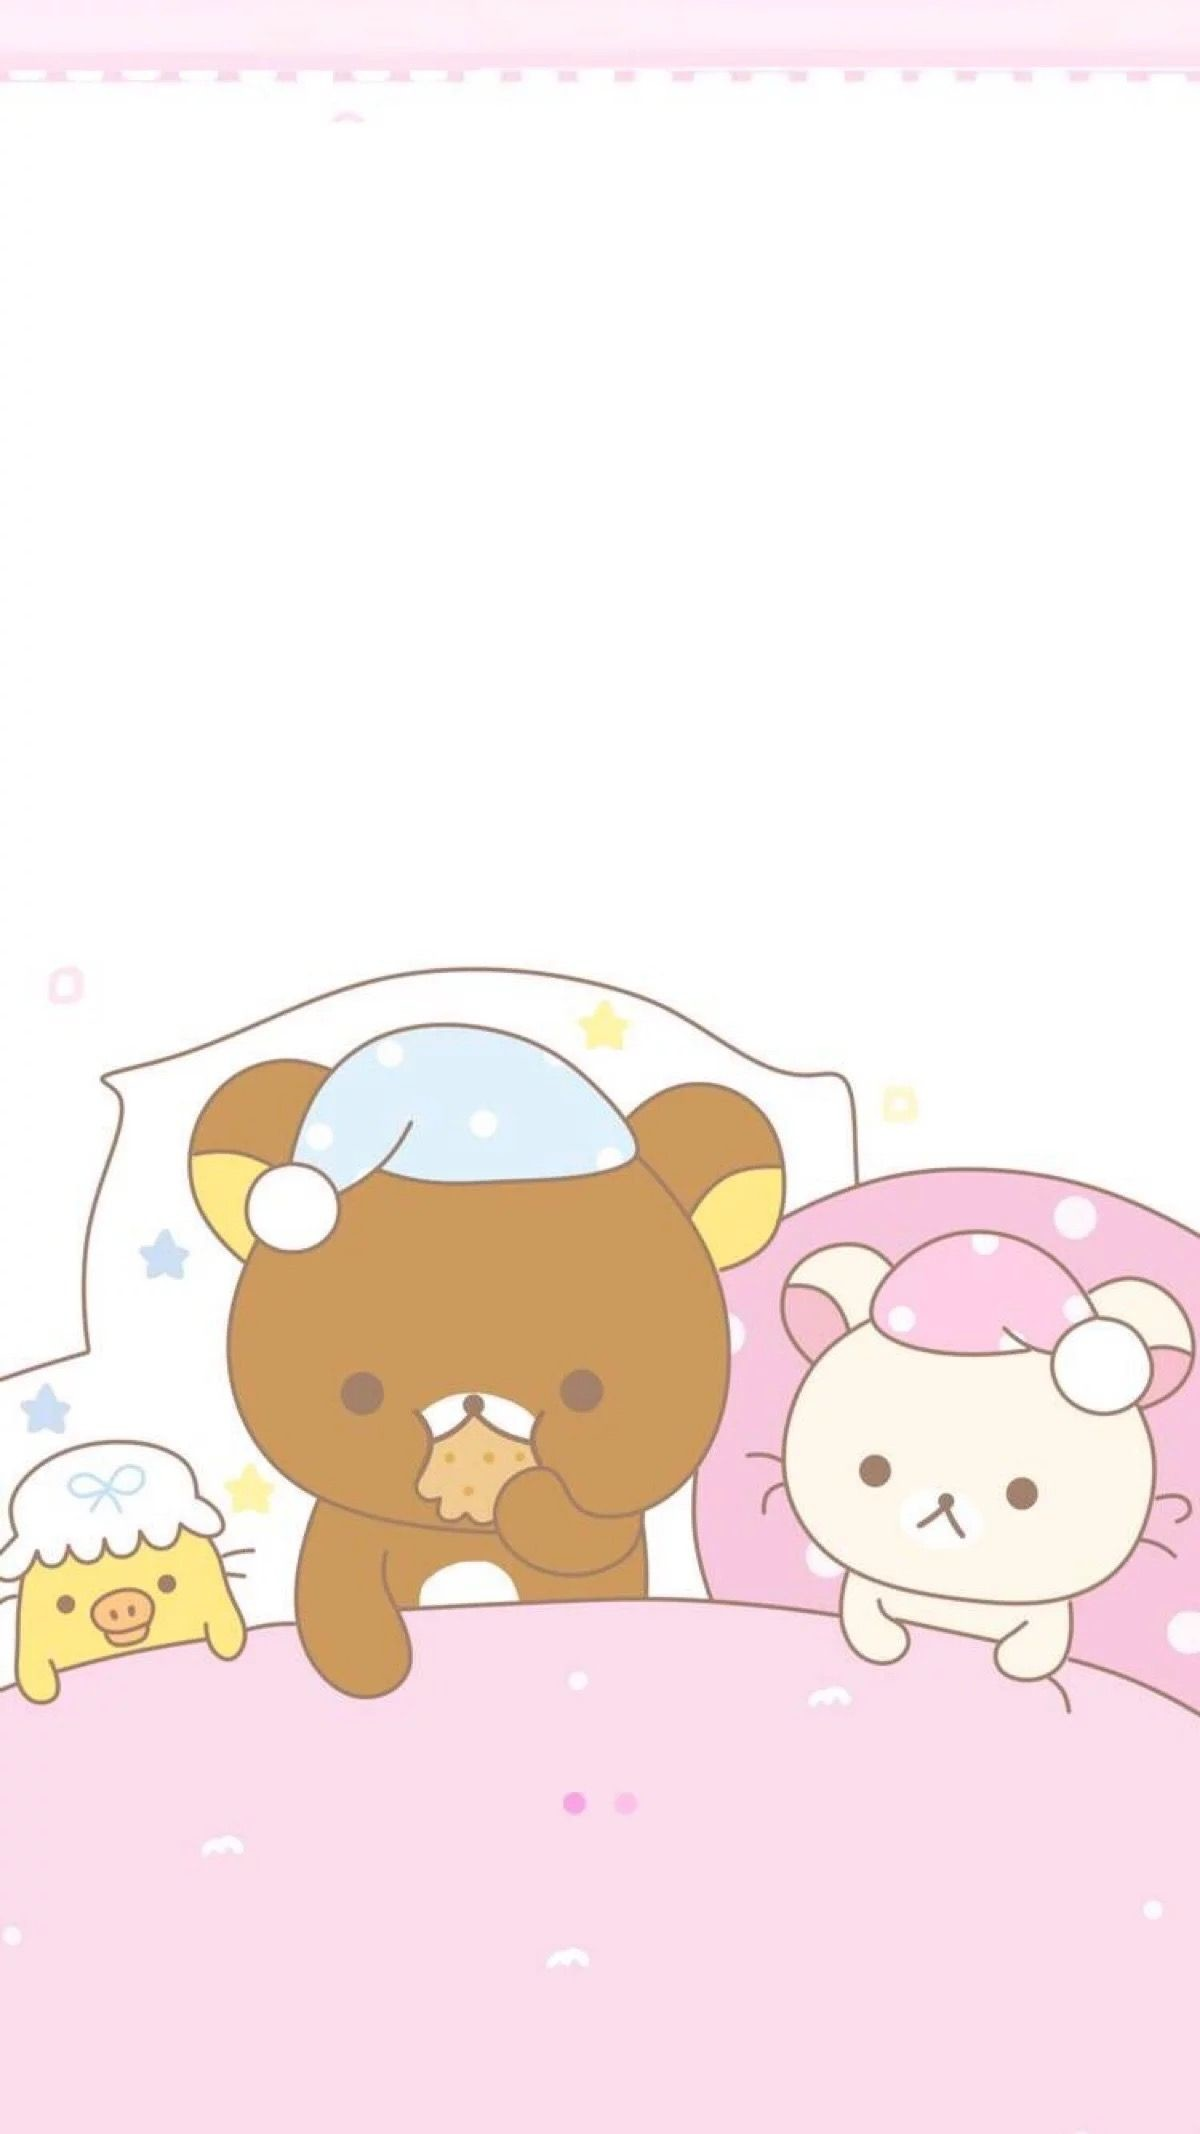 Res: 1200x2134, Rilakkuma, Telephone, Iphone Wallpapers, Chibi, Kawaii, Phone, Kawaii Cute, Iphone  Backgrounds